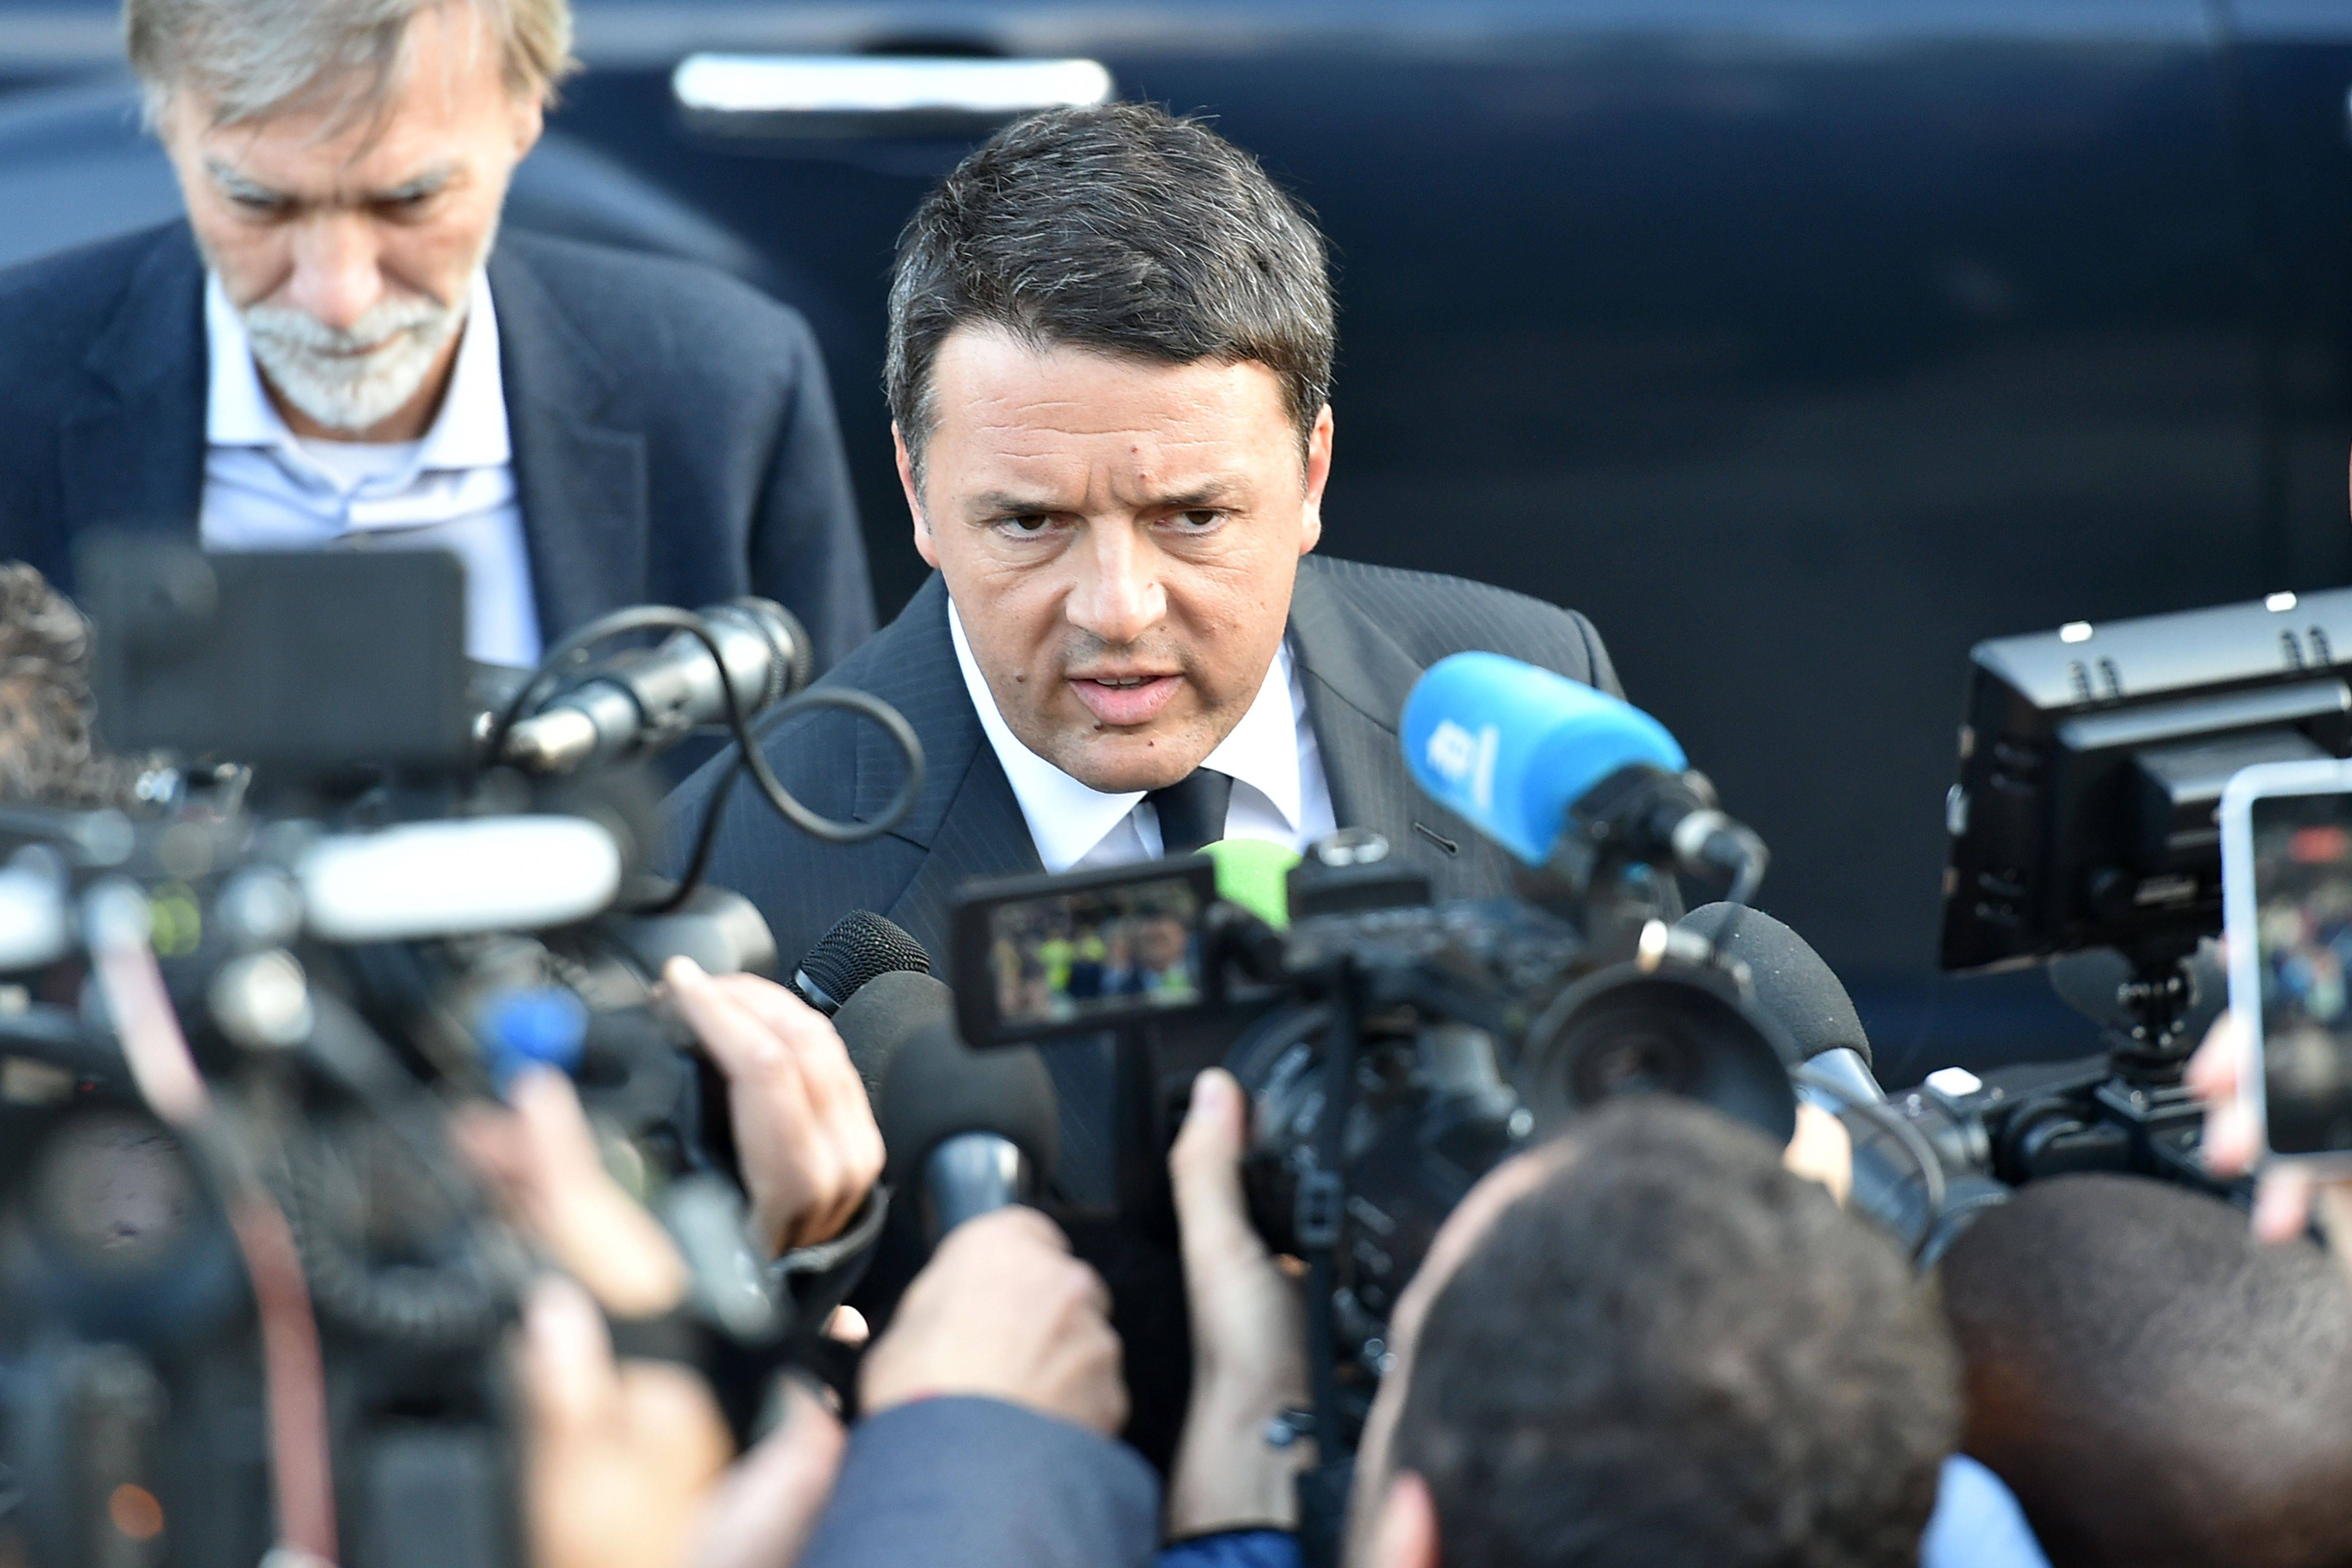 Matteo Renzi (ALBERTO PIZZOLI/AFP/Getty Images)